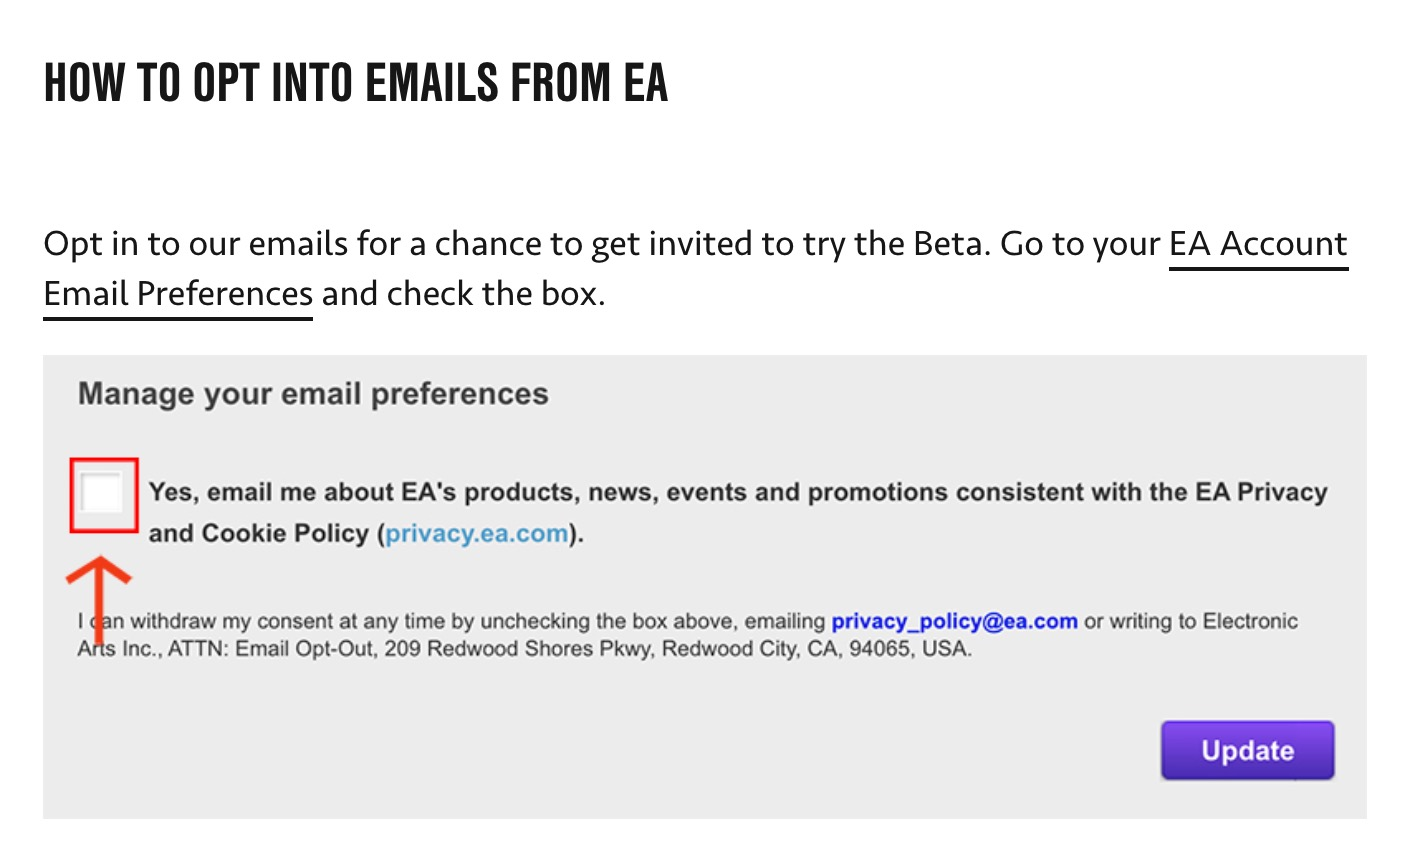 FIFA 21 beta access emails